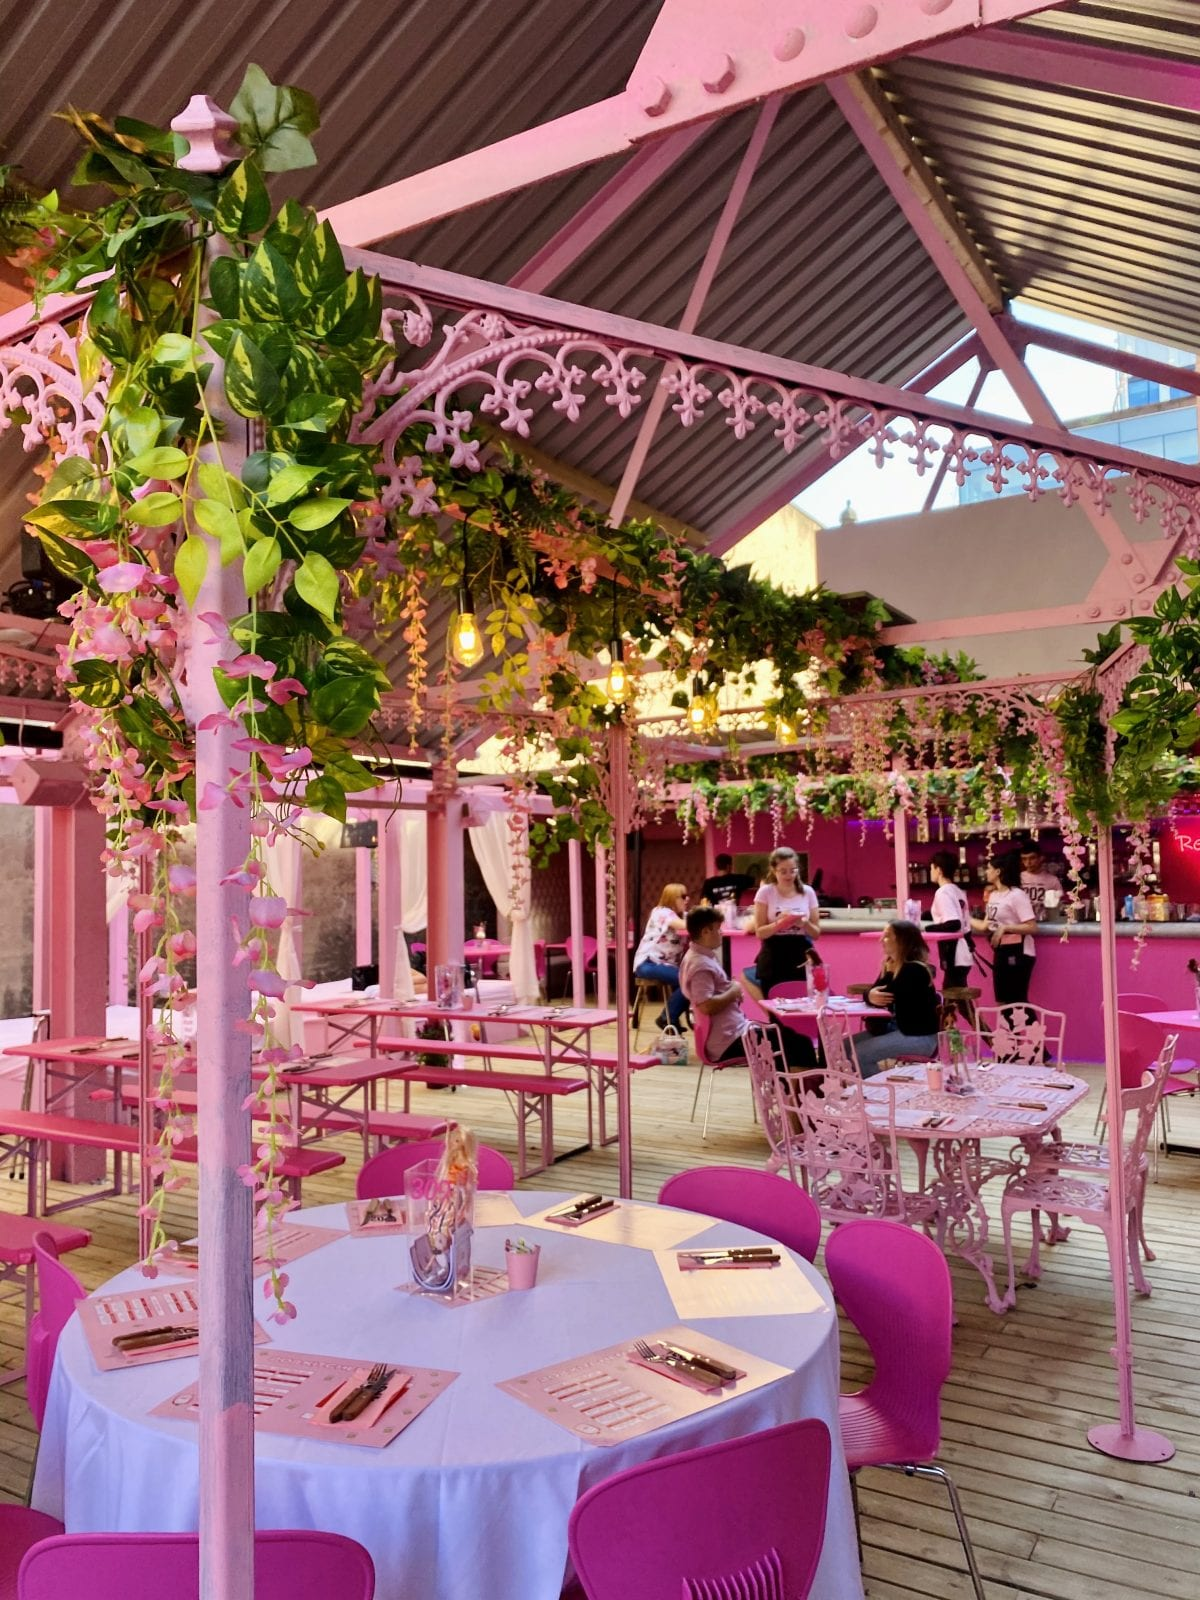 Manchester's pink restaurant 202 Kitchen is moving to a permanent Spinningfields location, The Manc